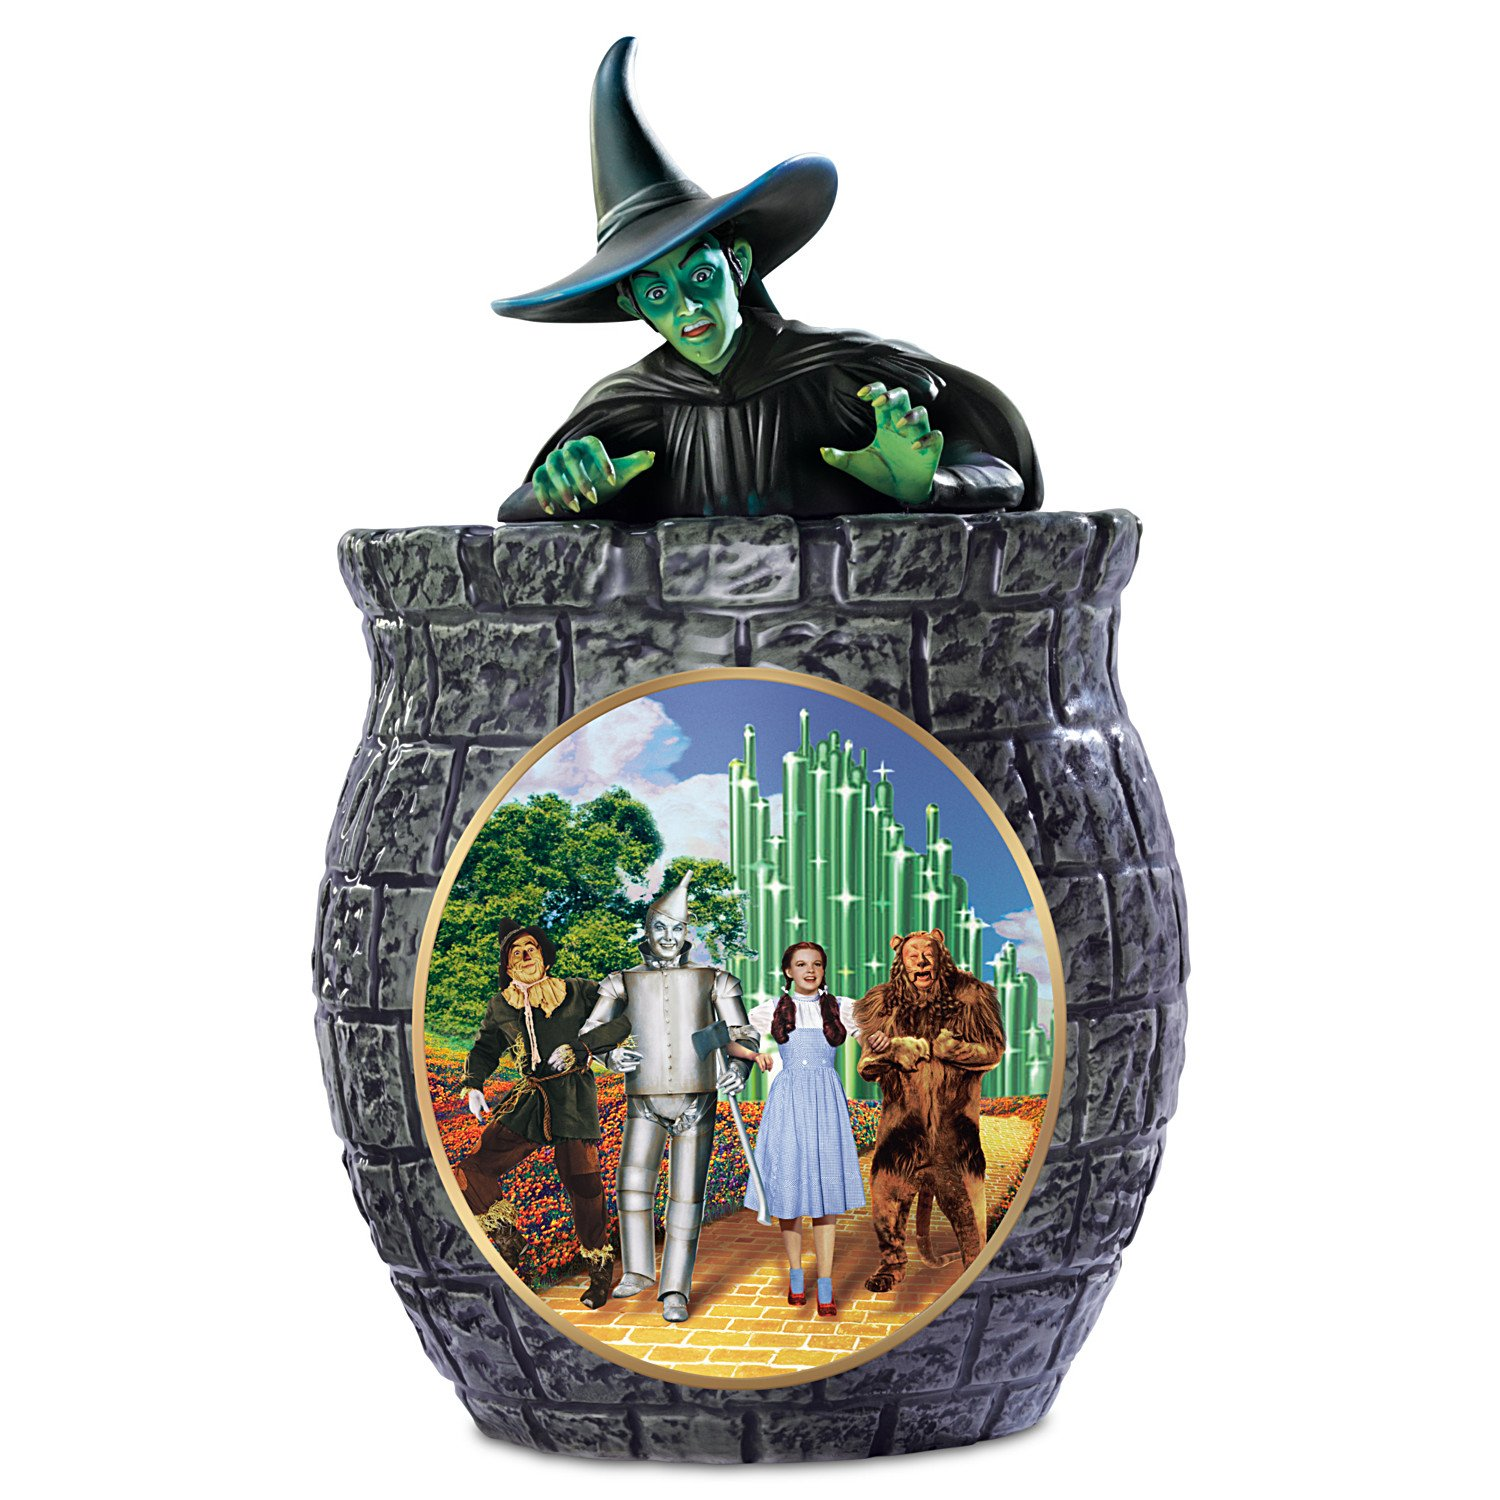 The Wizard Of Oz Cookie Jar With Wicked Witch Of The West, Dorothy, Scarecrow, Tin Man, And The Cowardly Lion by The Bradford Exchange by Bradford Exchange